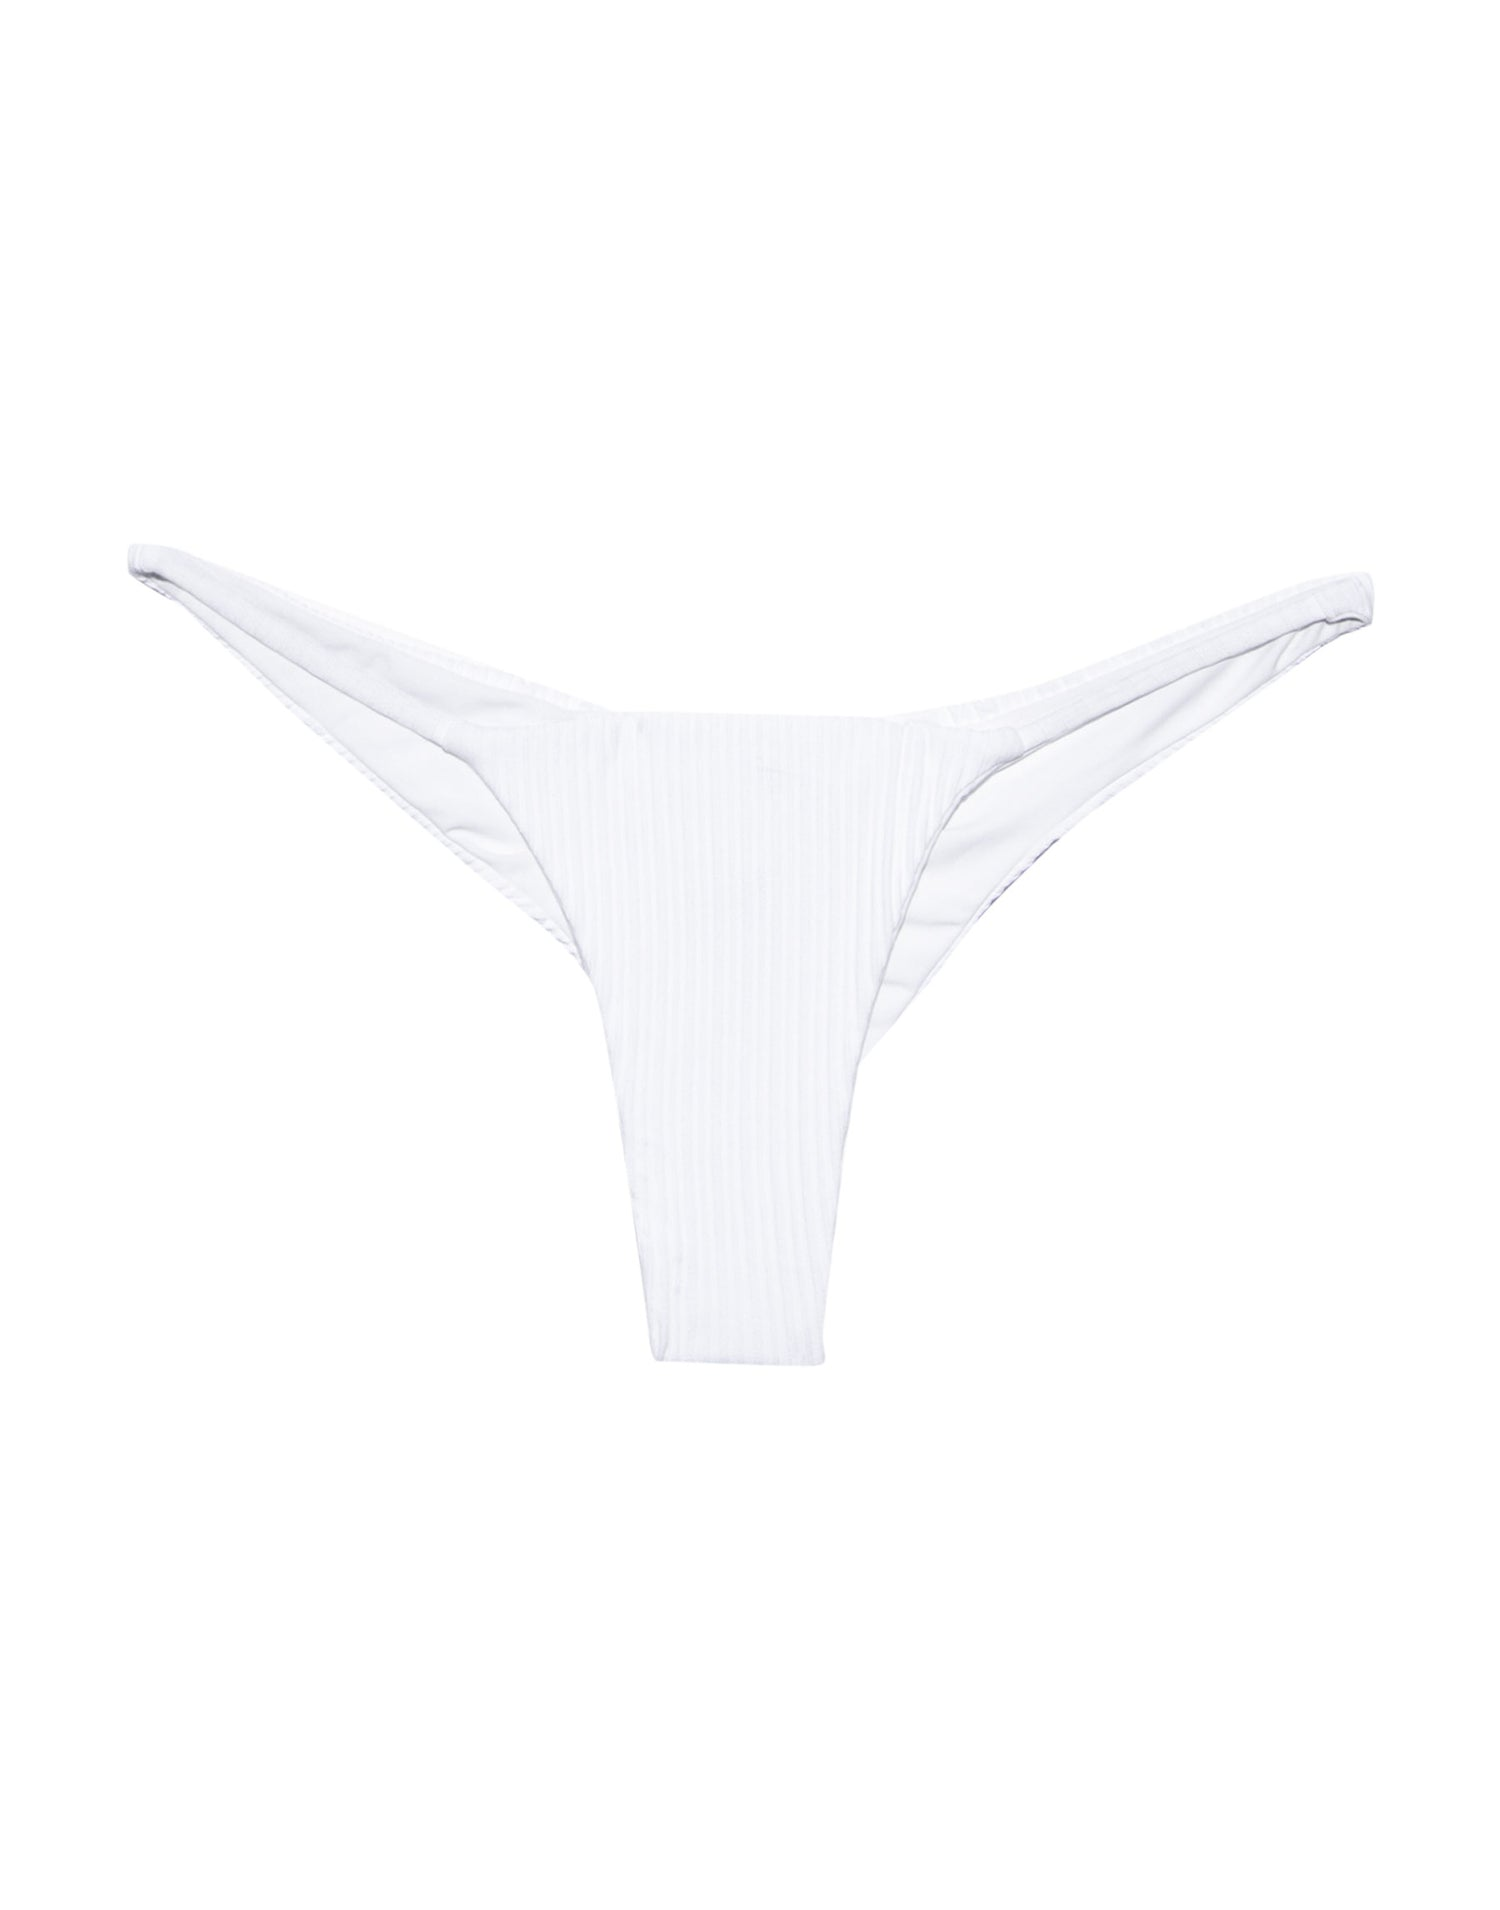 Jordan Brazilian Bikini Bottom in White Rib - product view